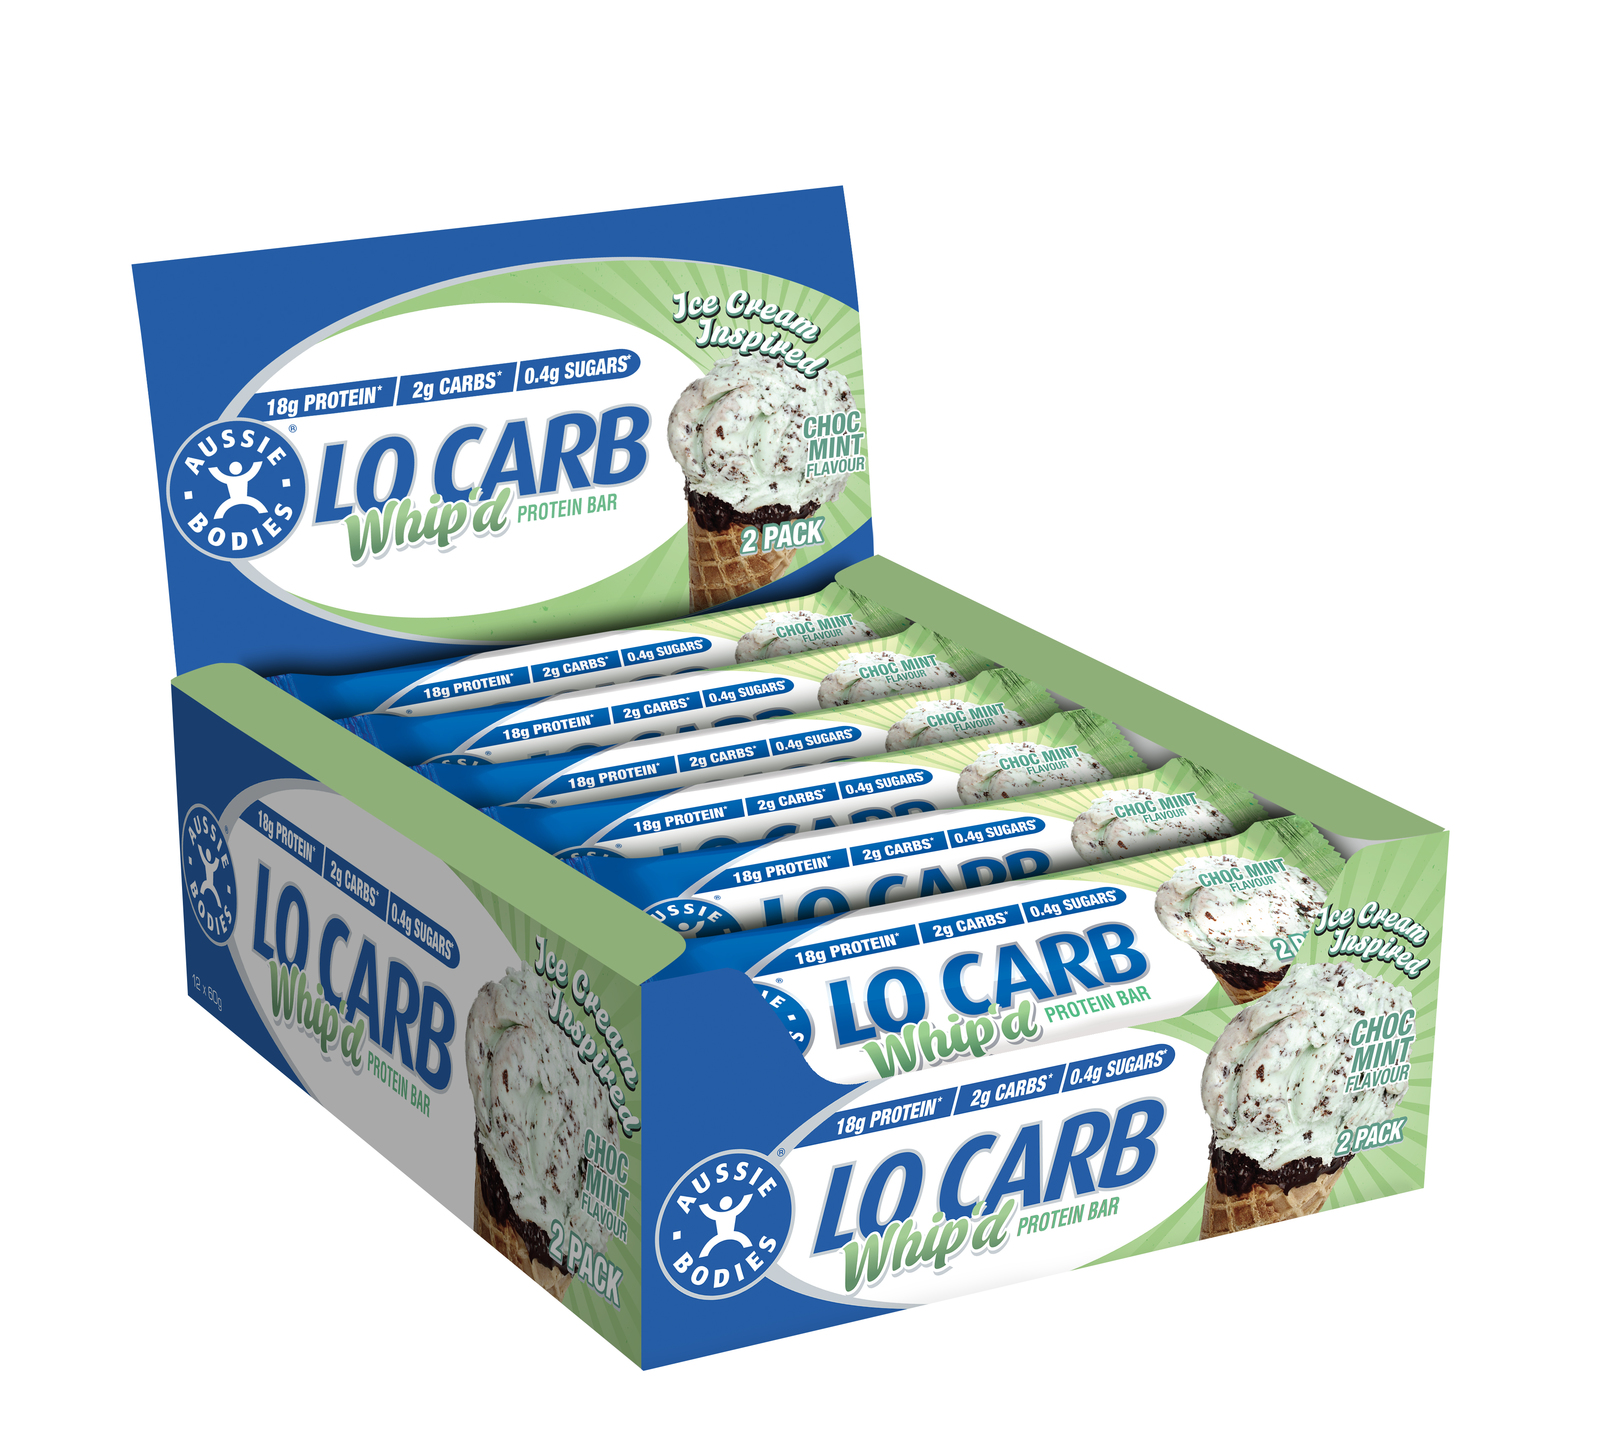 Aussie Bodies Lo Carb Protein Bars - Choc Mint (Box of 12) image